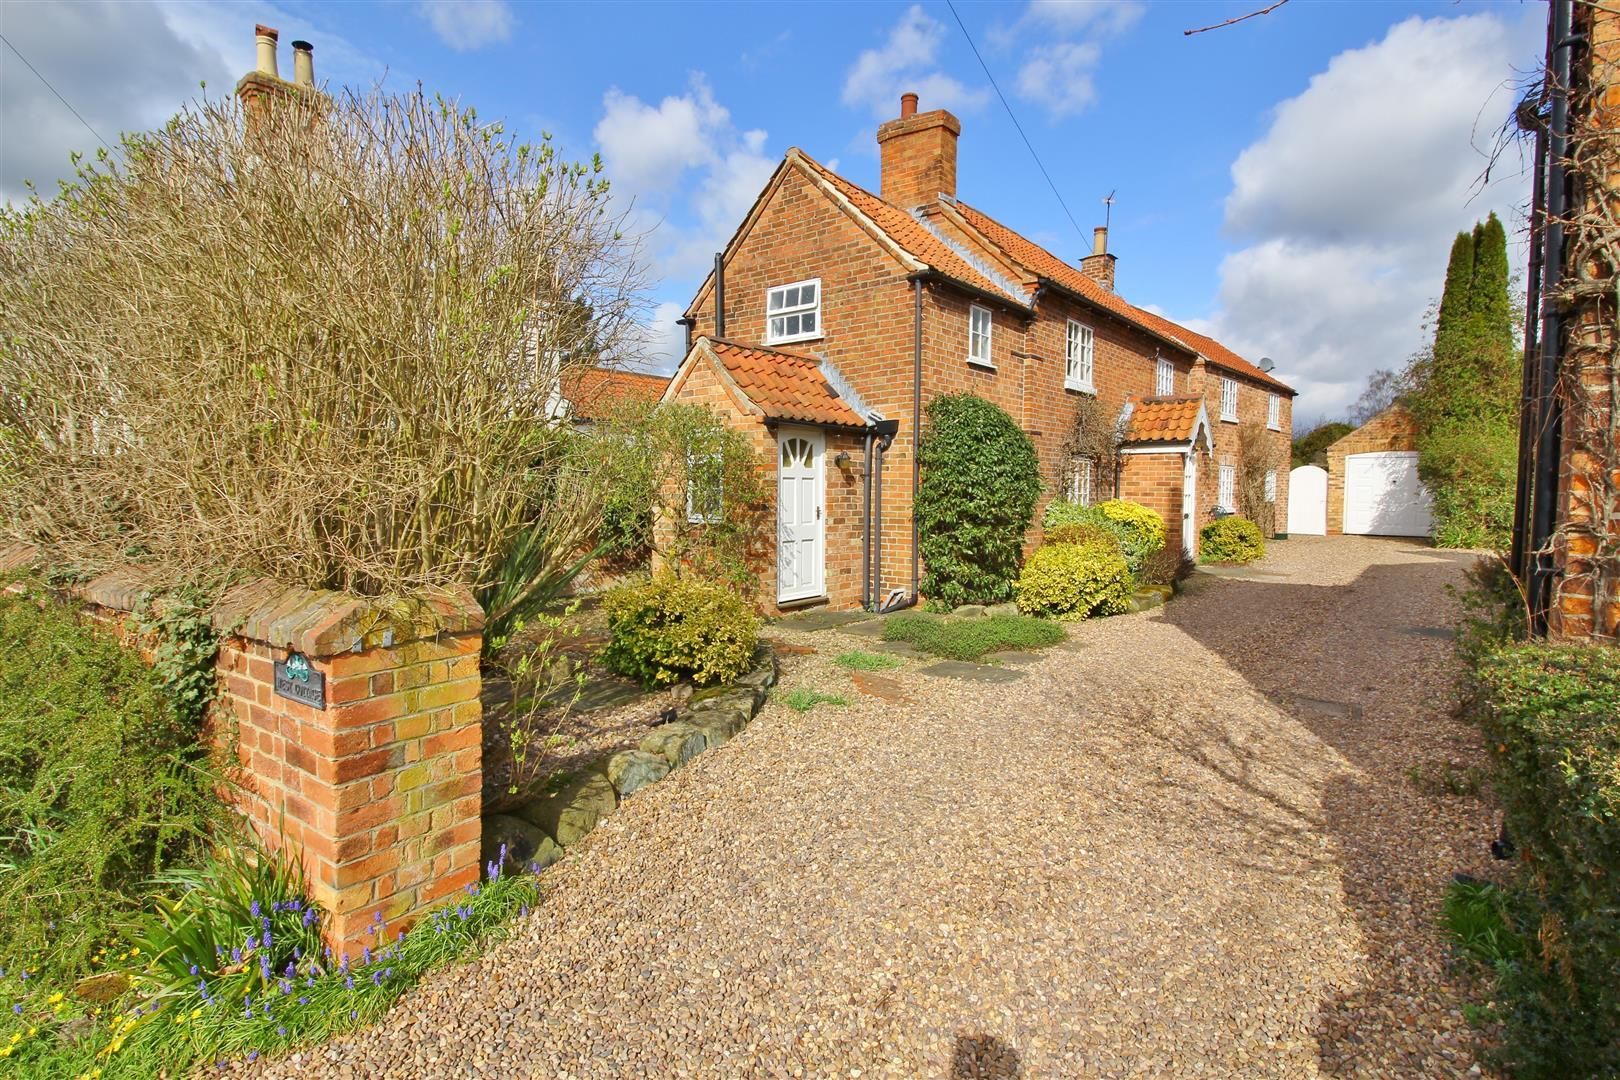 Sunbeam Street, Whatton